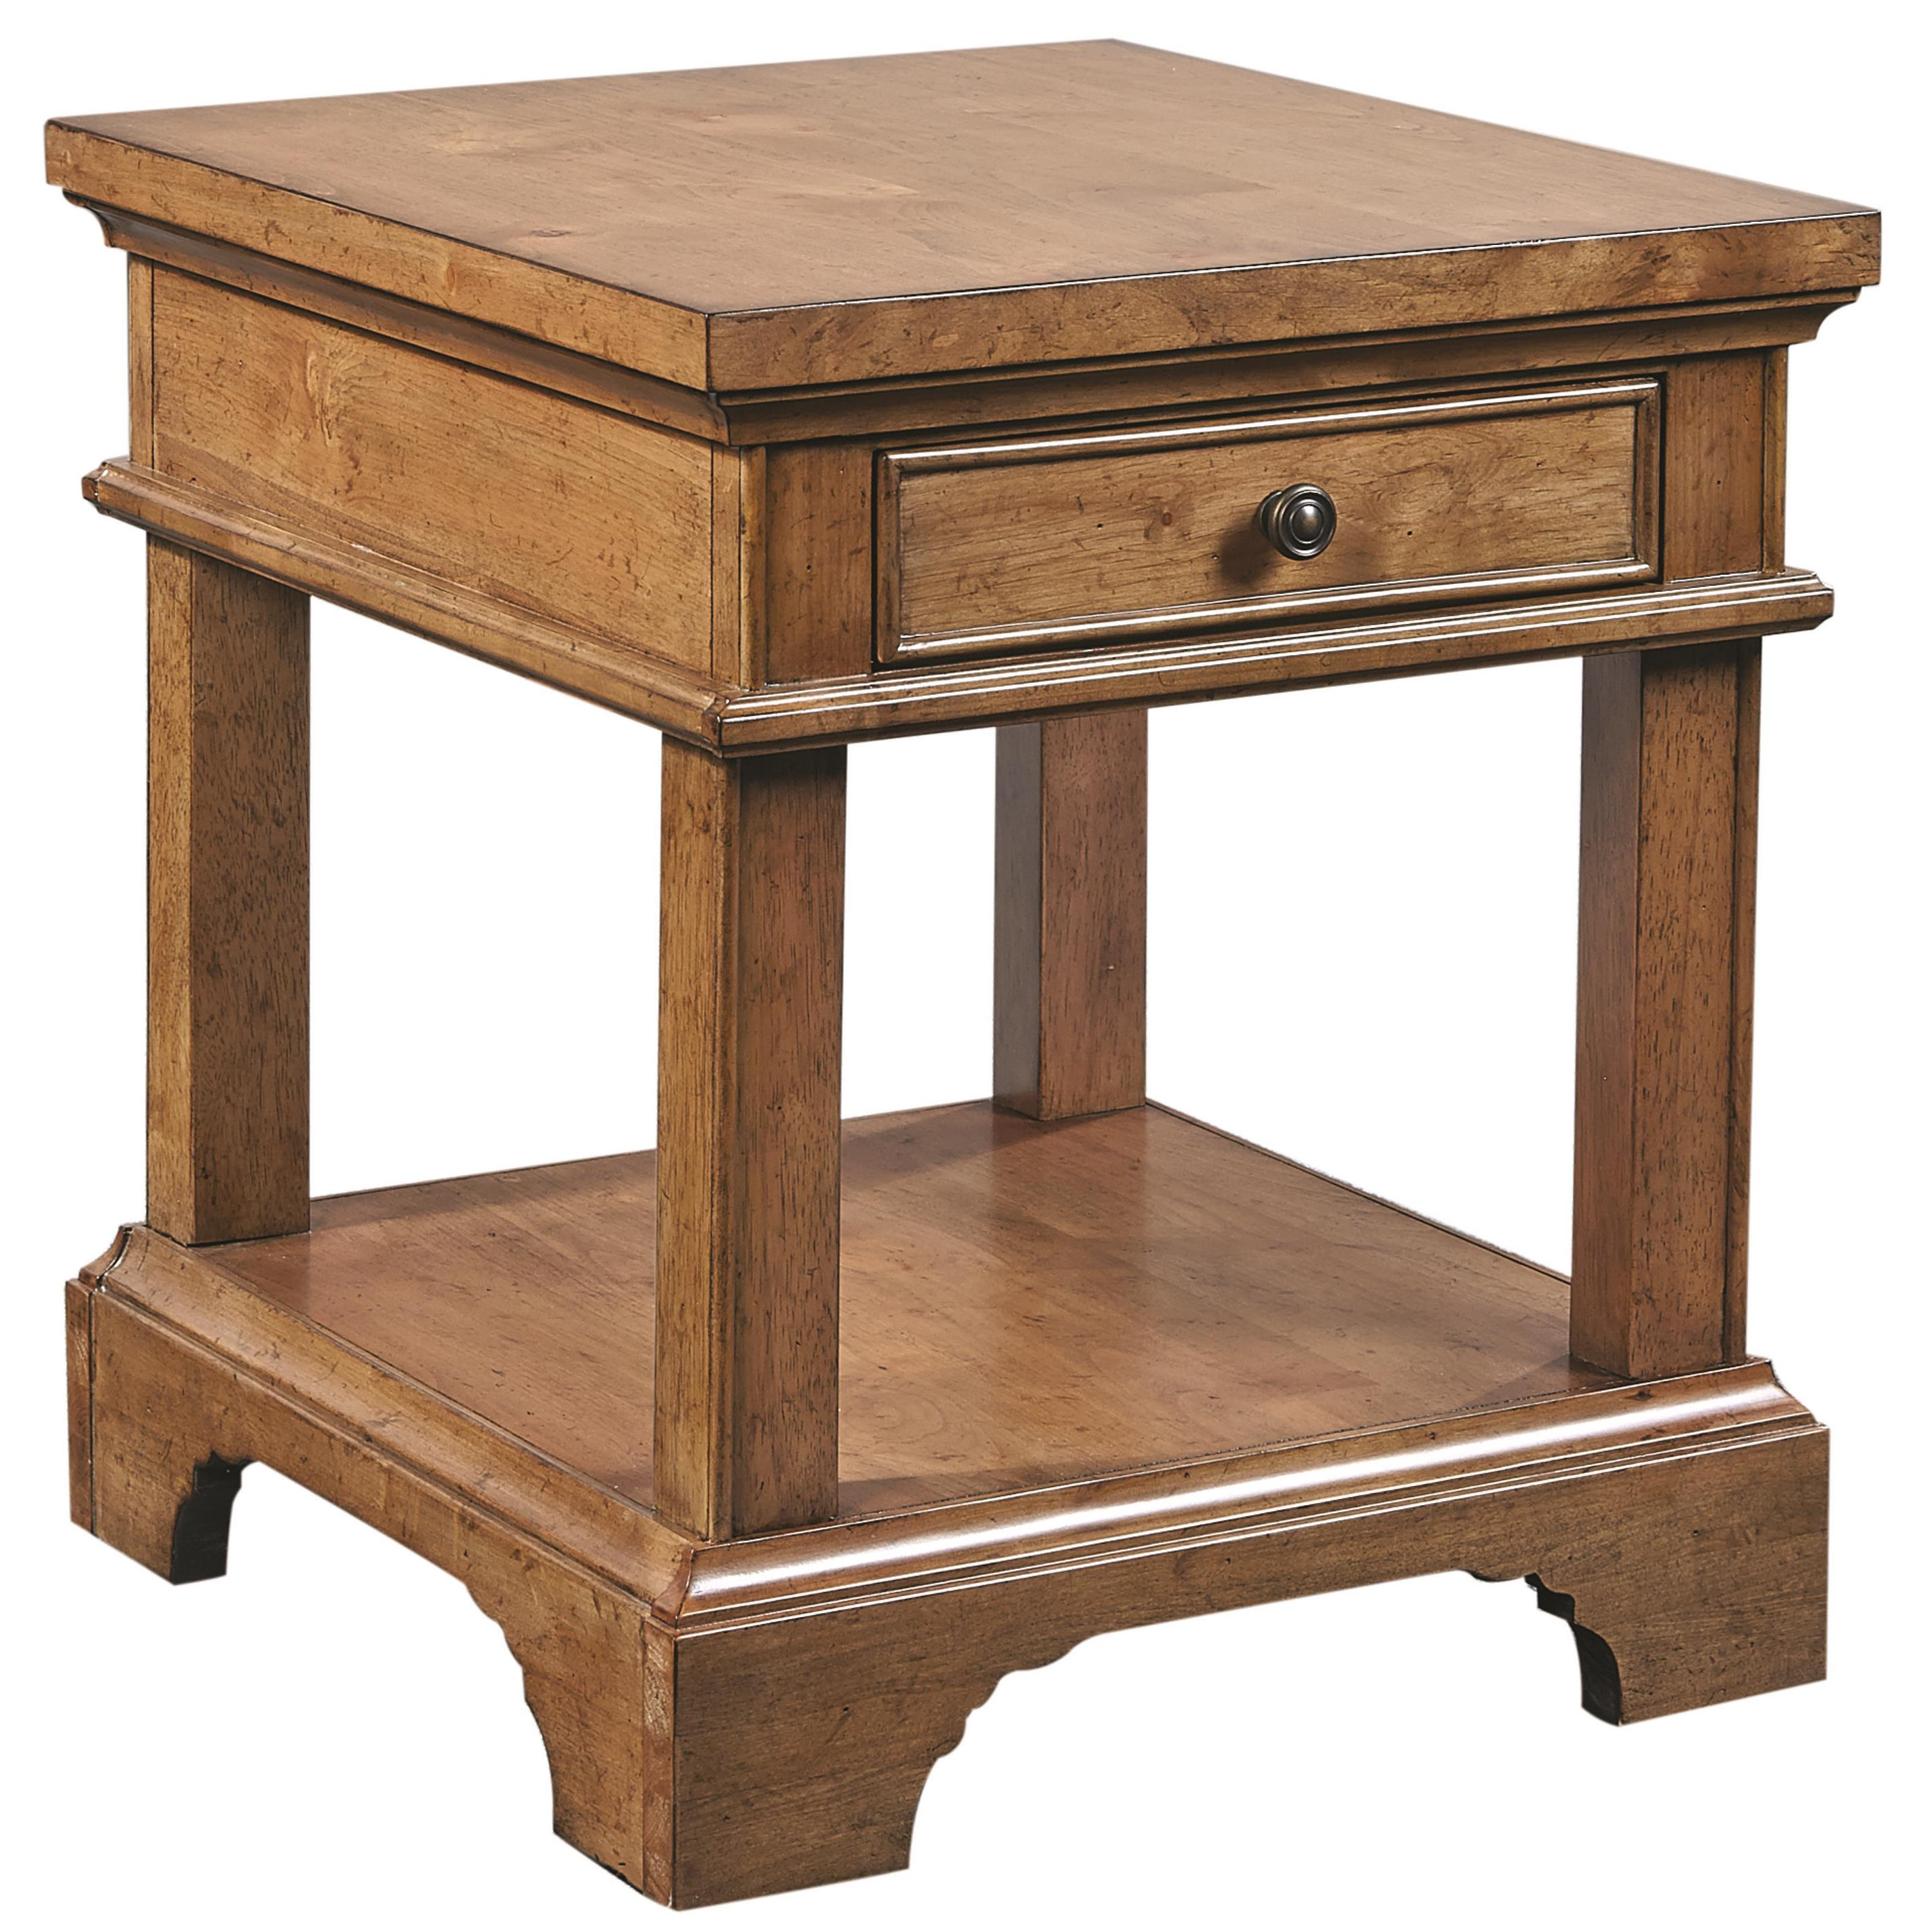 Morris Home Furnishings Walnut Creek Walnut Creek End Table with Power - Item Number: I09-9140